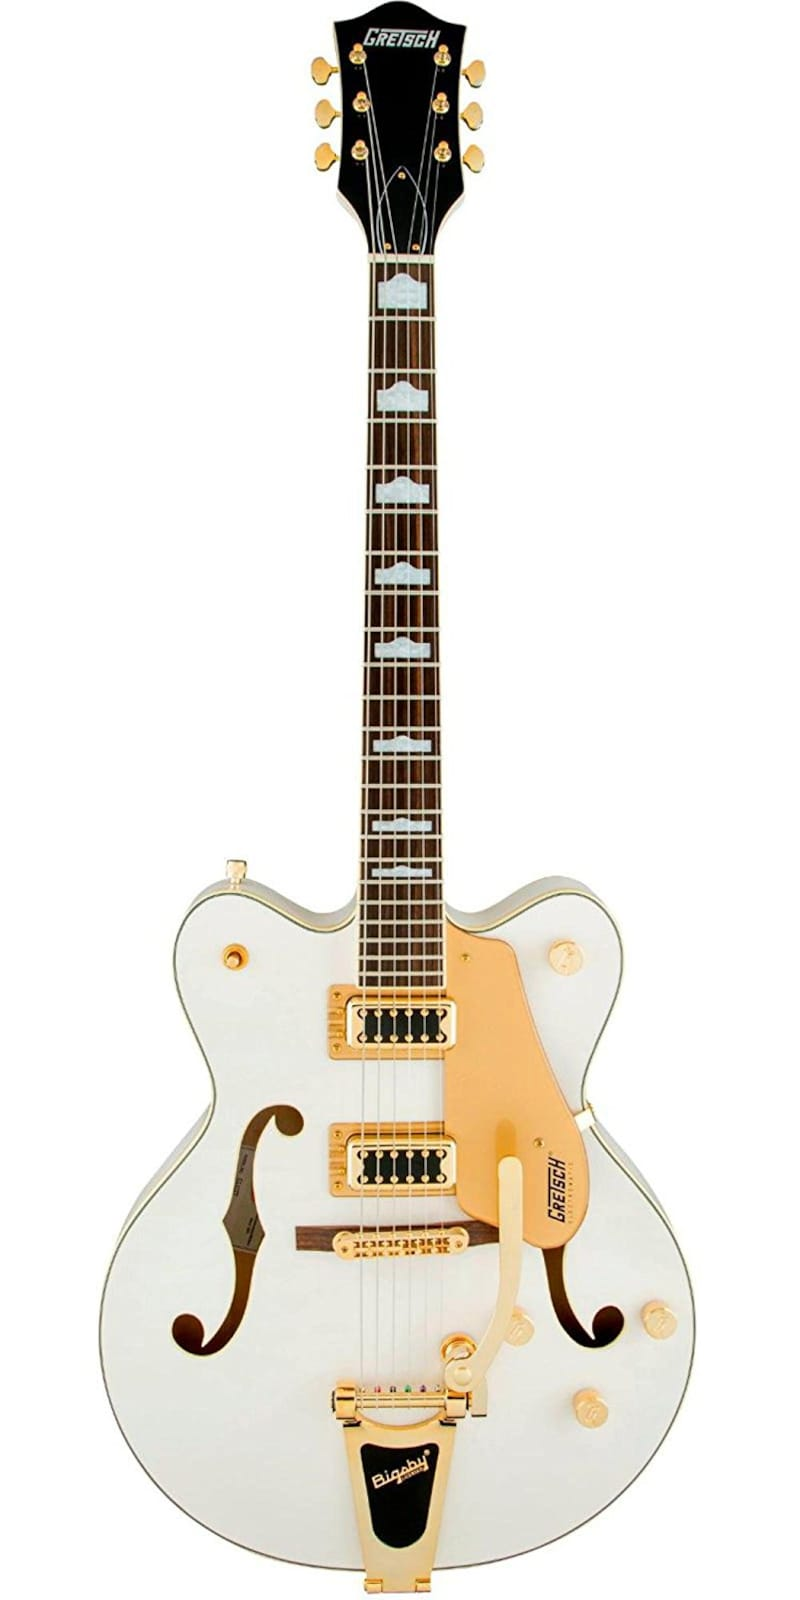 GRETSCH,G5422TG Electromatic Hollow Body Double-Cut with Bigsby Snow Crest White